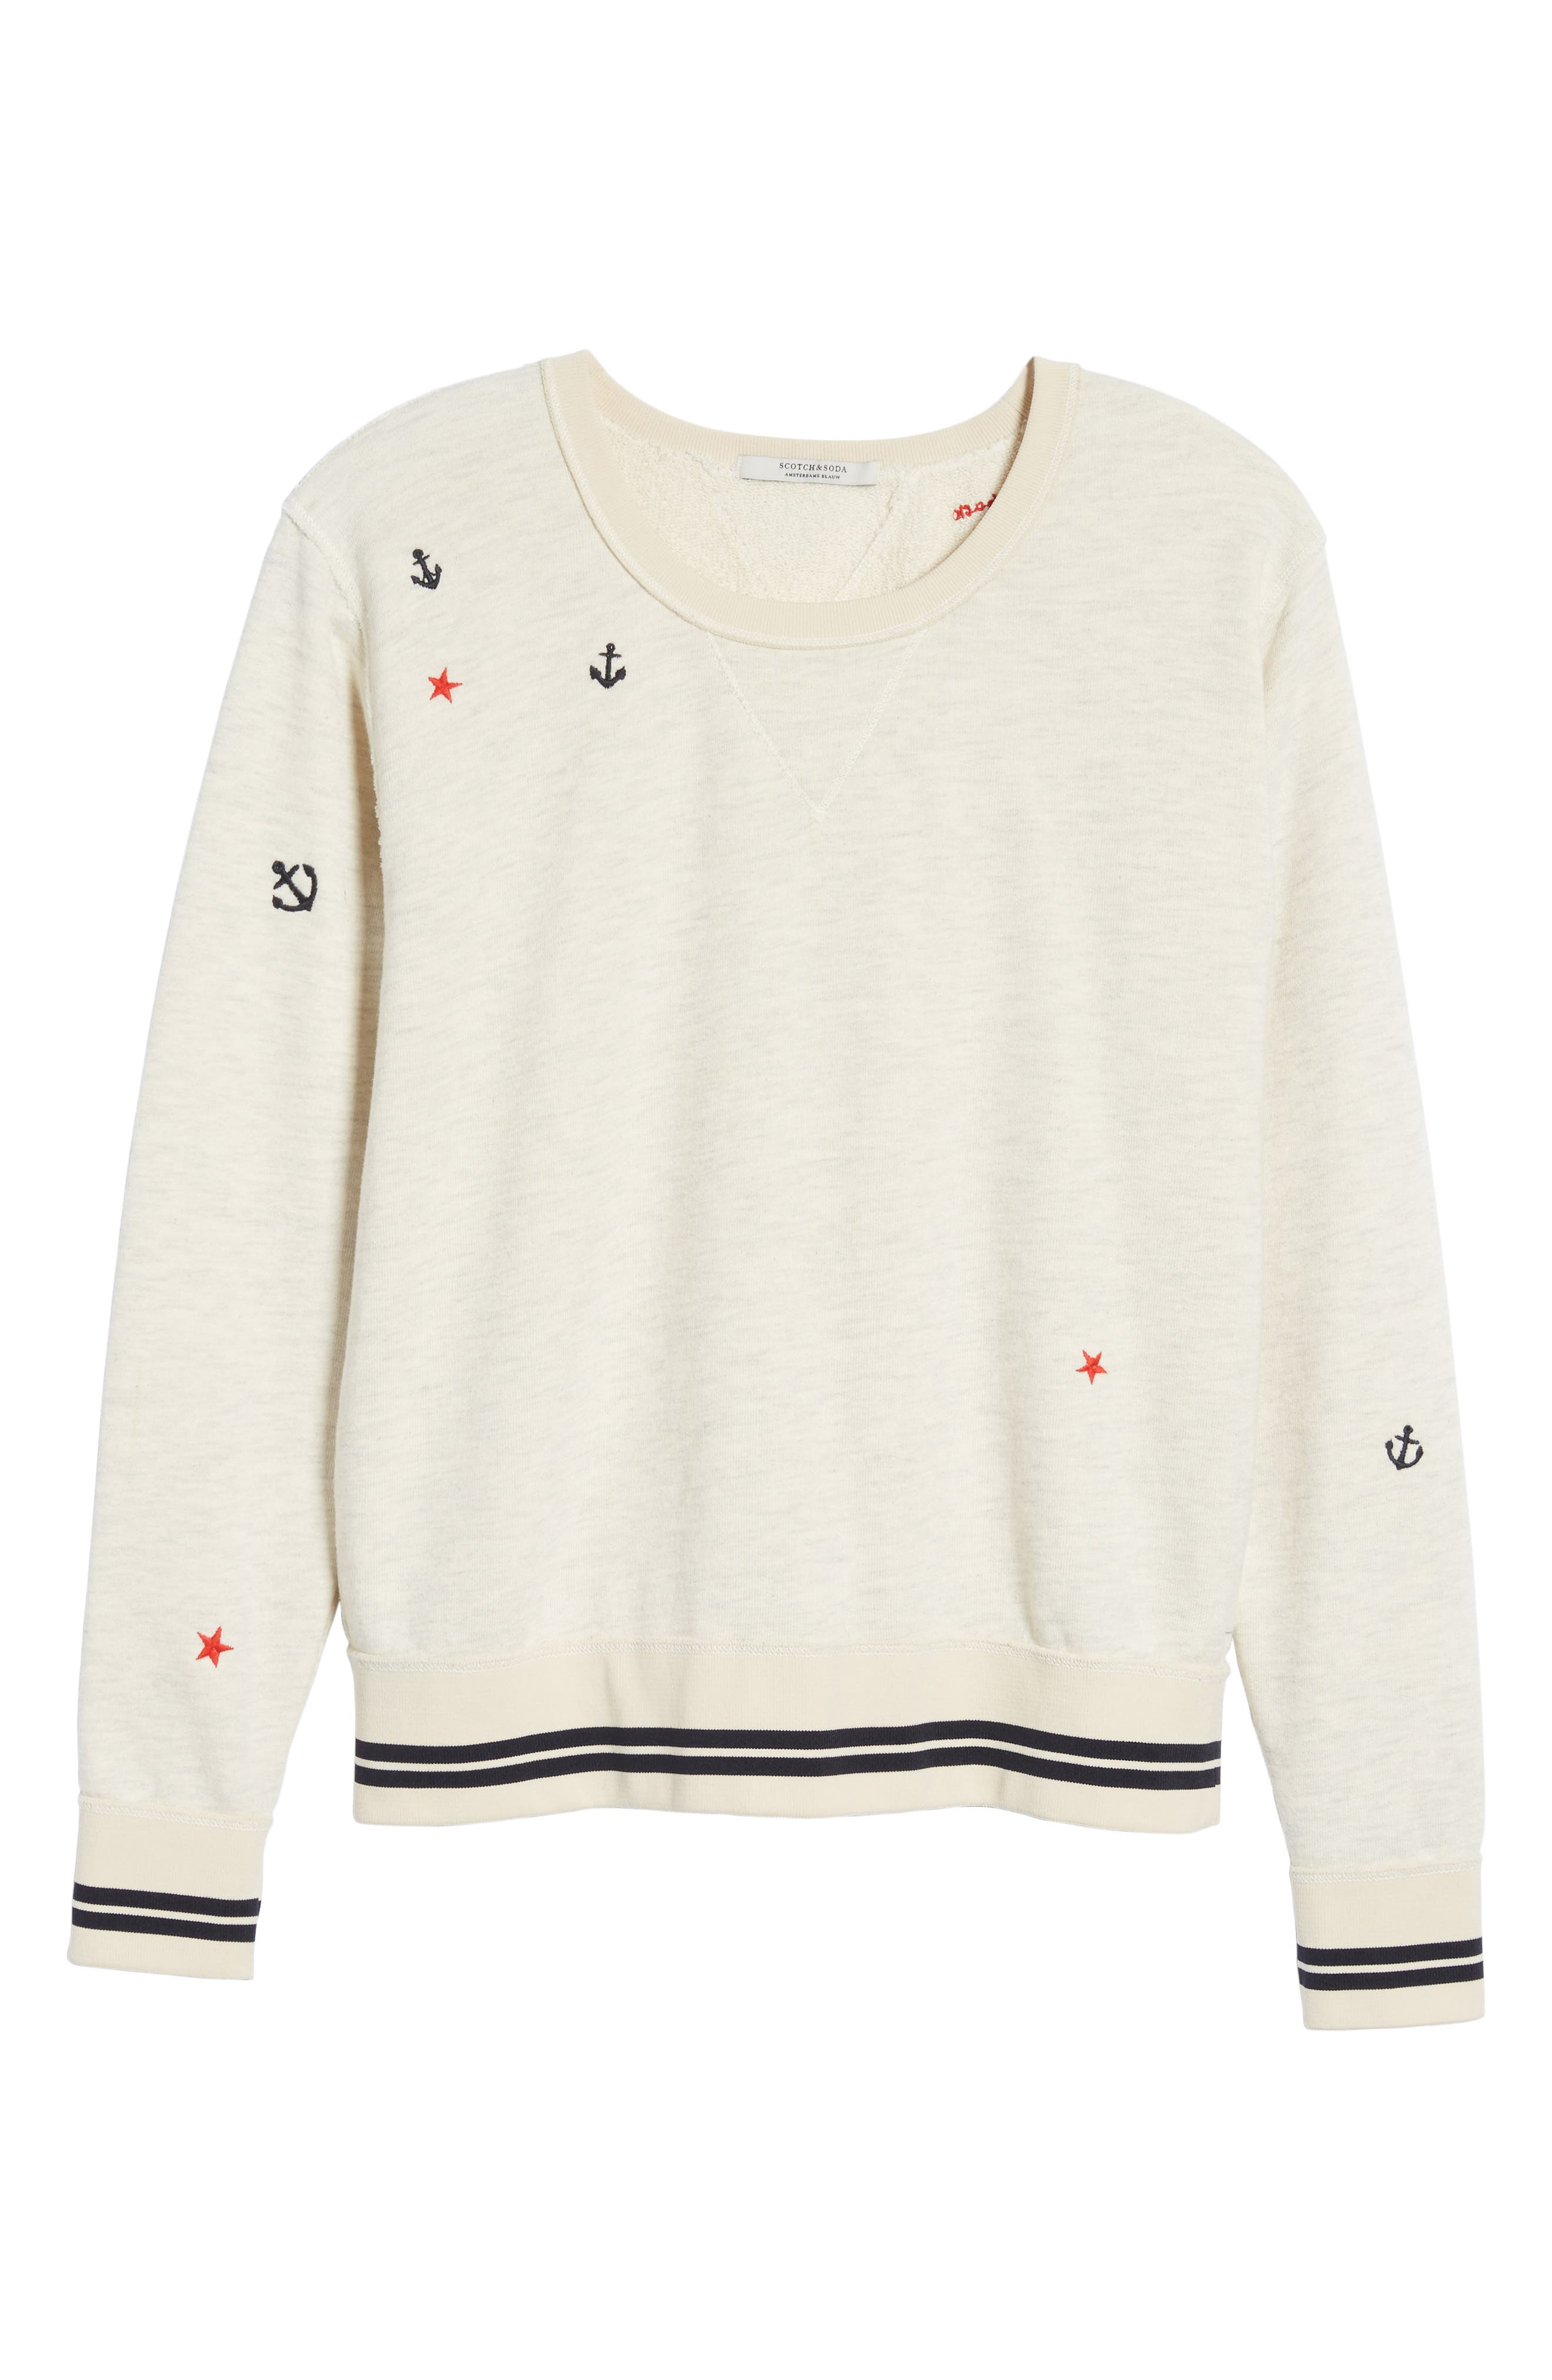 Nautical Sweatshirt,                             Alternate thumbnail 6, color,                             900